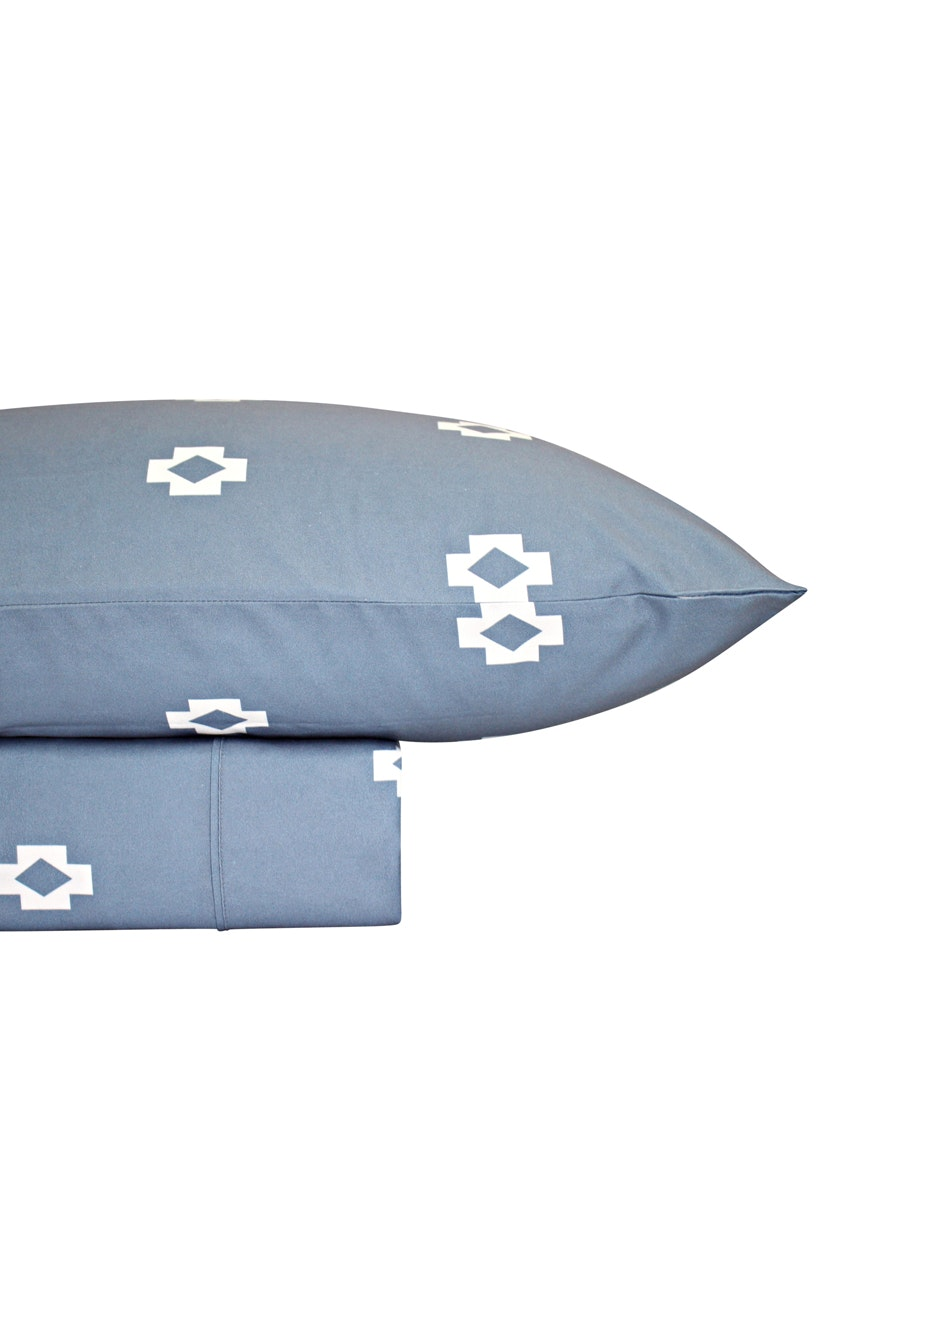 Thermal Flannel Sheet Sets - Tribal Design - Bay Blue - Double Bed